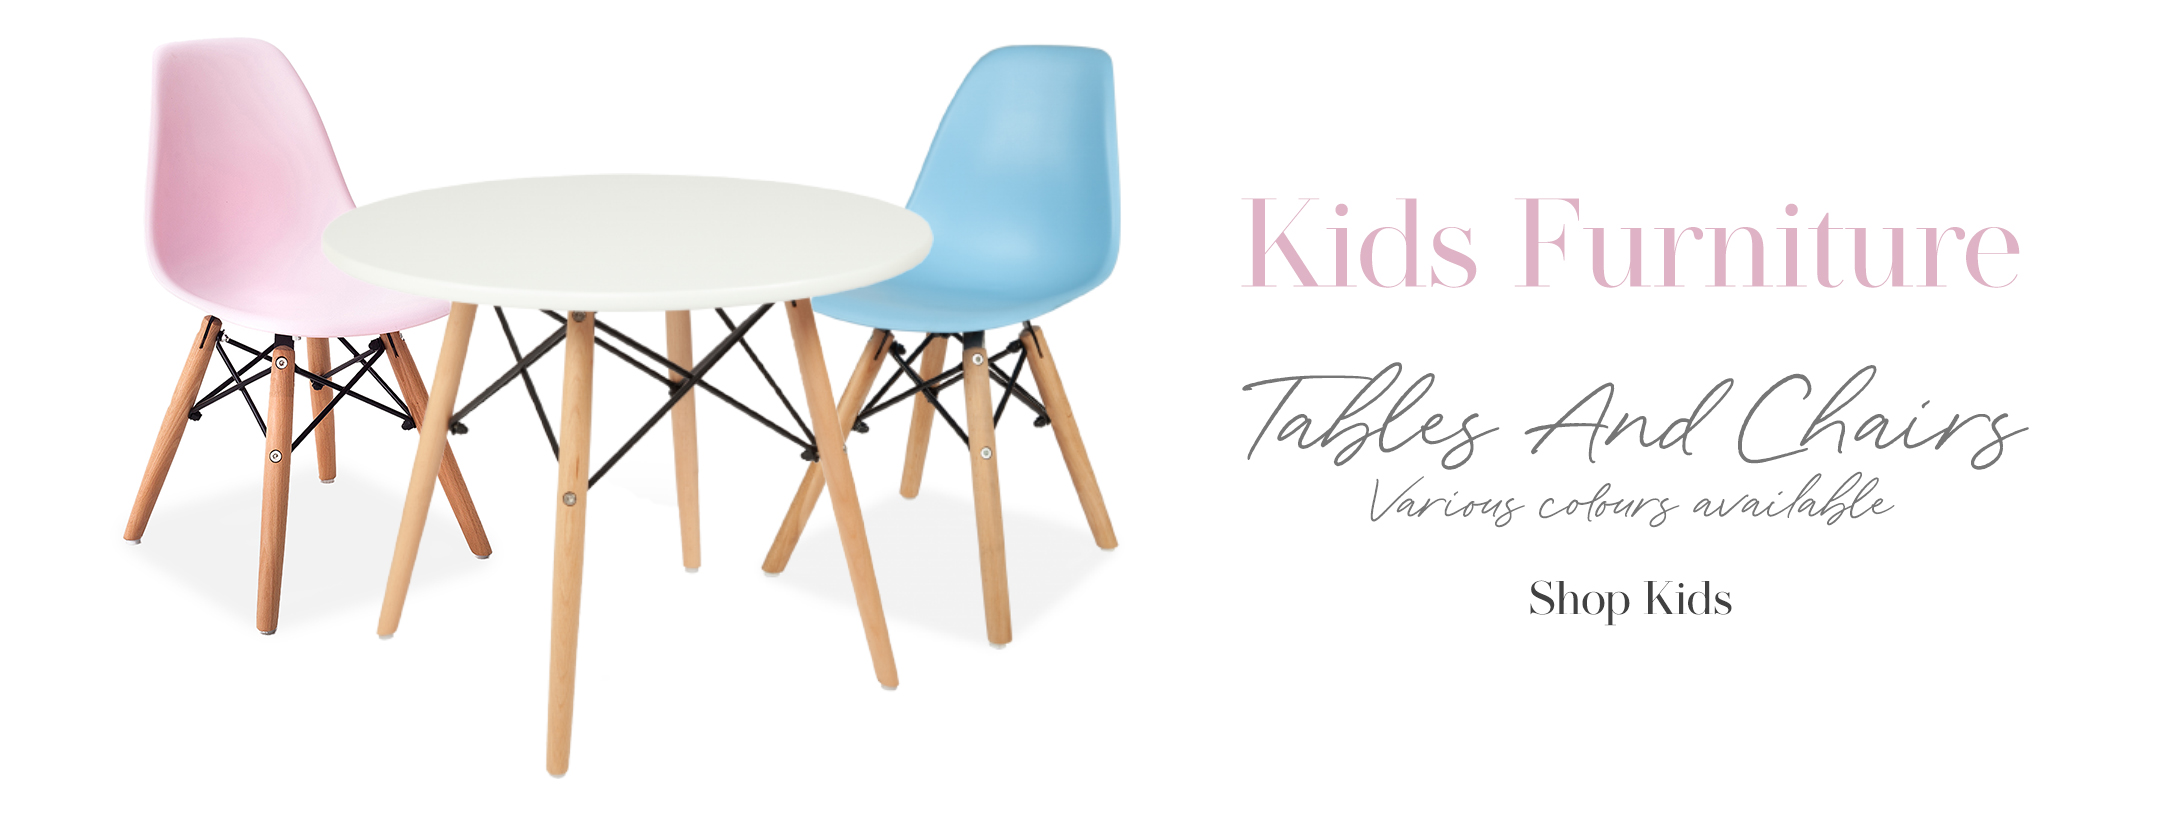 Children''s table and chairs, blue and pink chair with white table